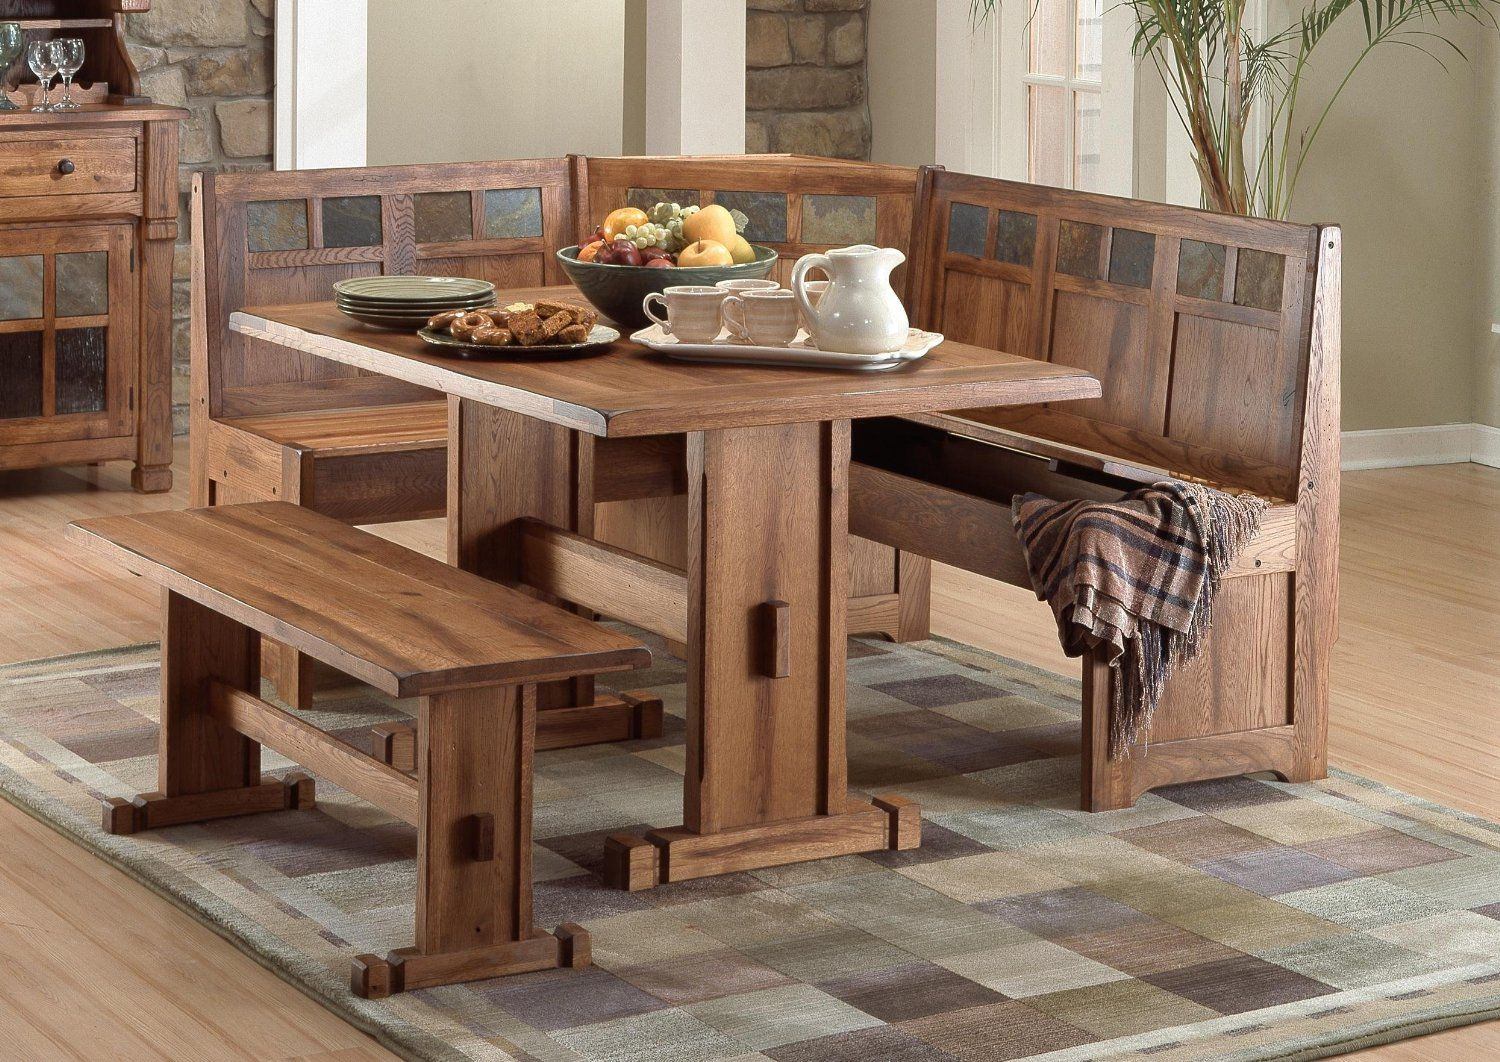 Dining room table with corner bench seat - Wood Kitchen Table With Bench Seating Designs Ideas